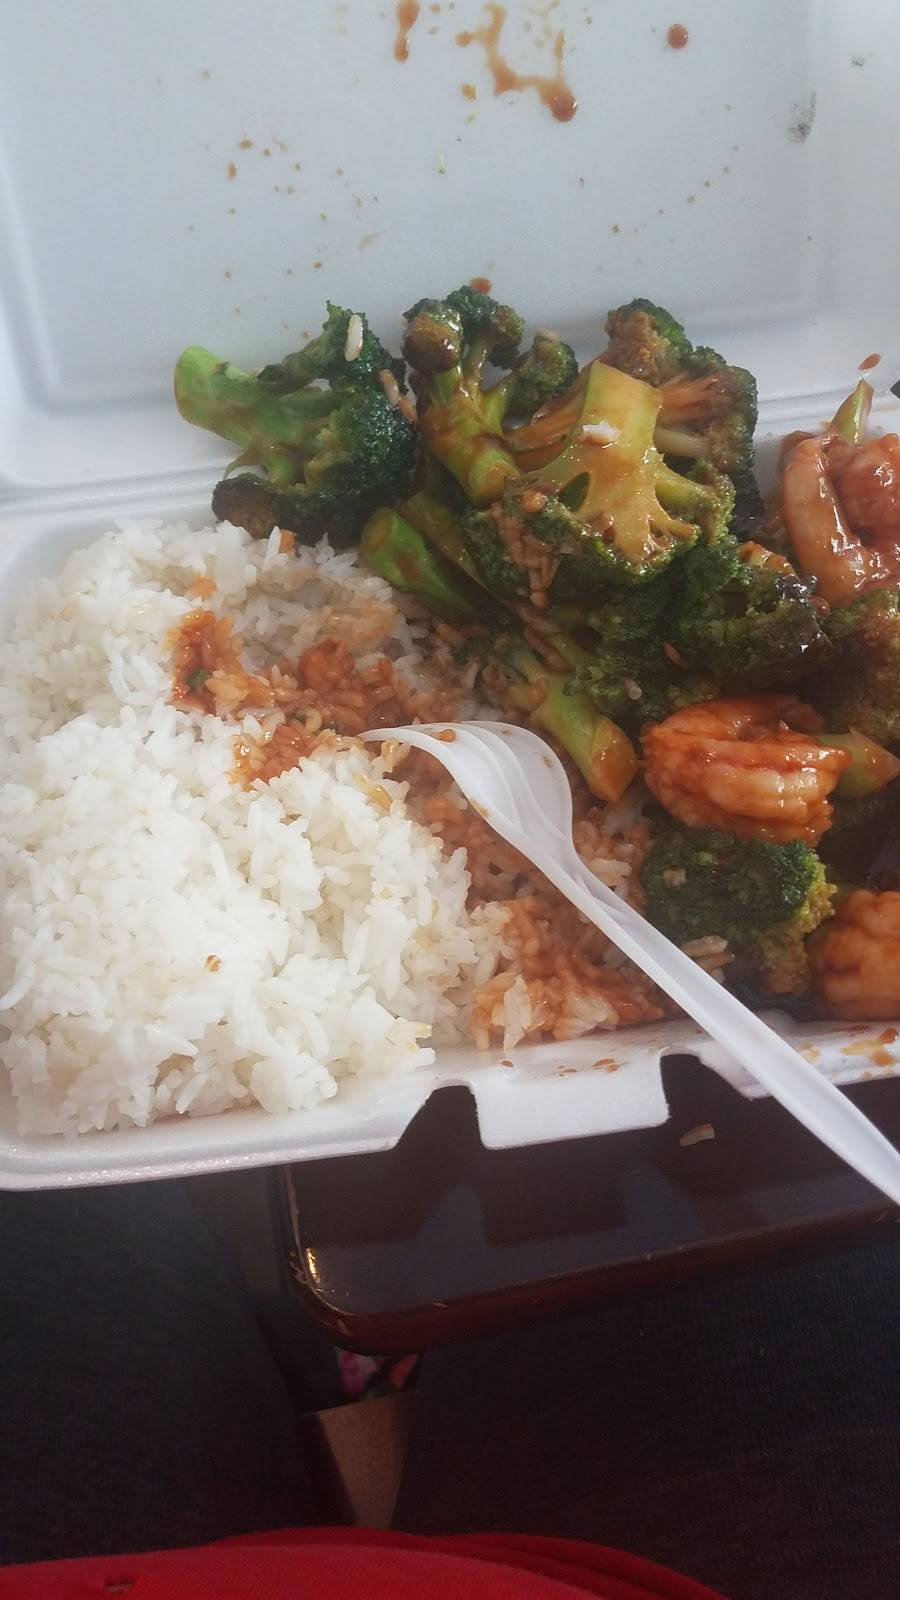 Golden House   meal delivery   35-12 30th Ave, Long Island City, NY 11103, USA   7185450101 OR +1 718-545-0101